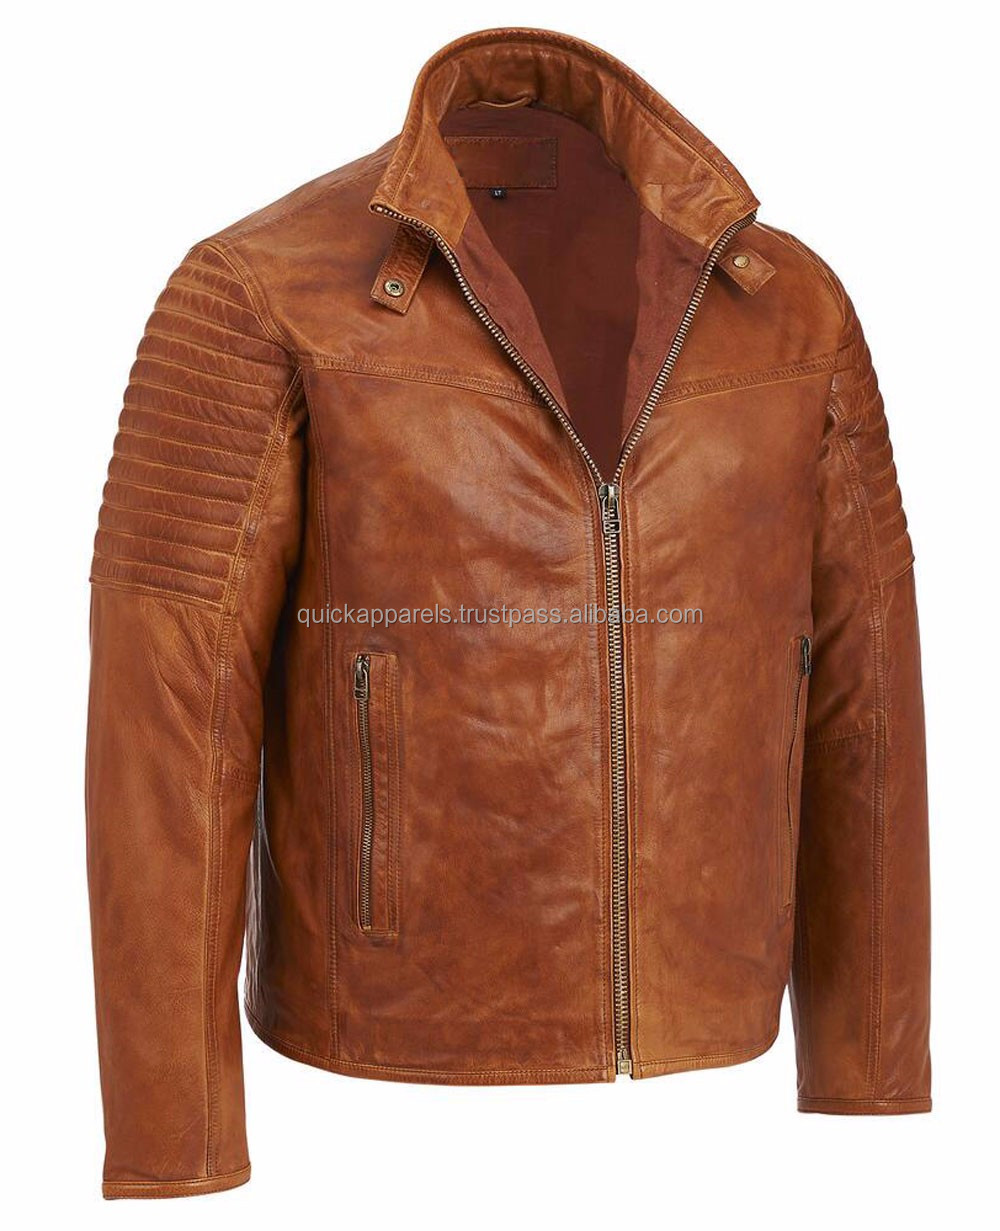 Custom High Quality Men's Leather Jacket / New Fashion Leather Jacket with Metal Zipper / Leather